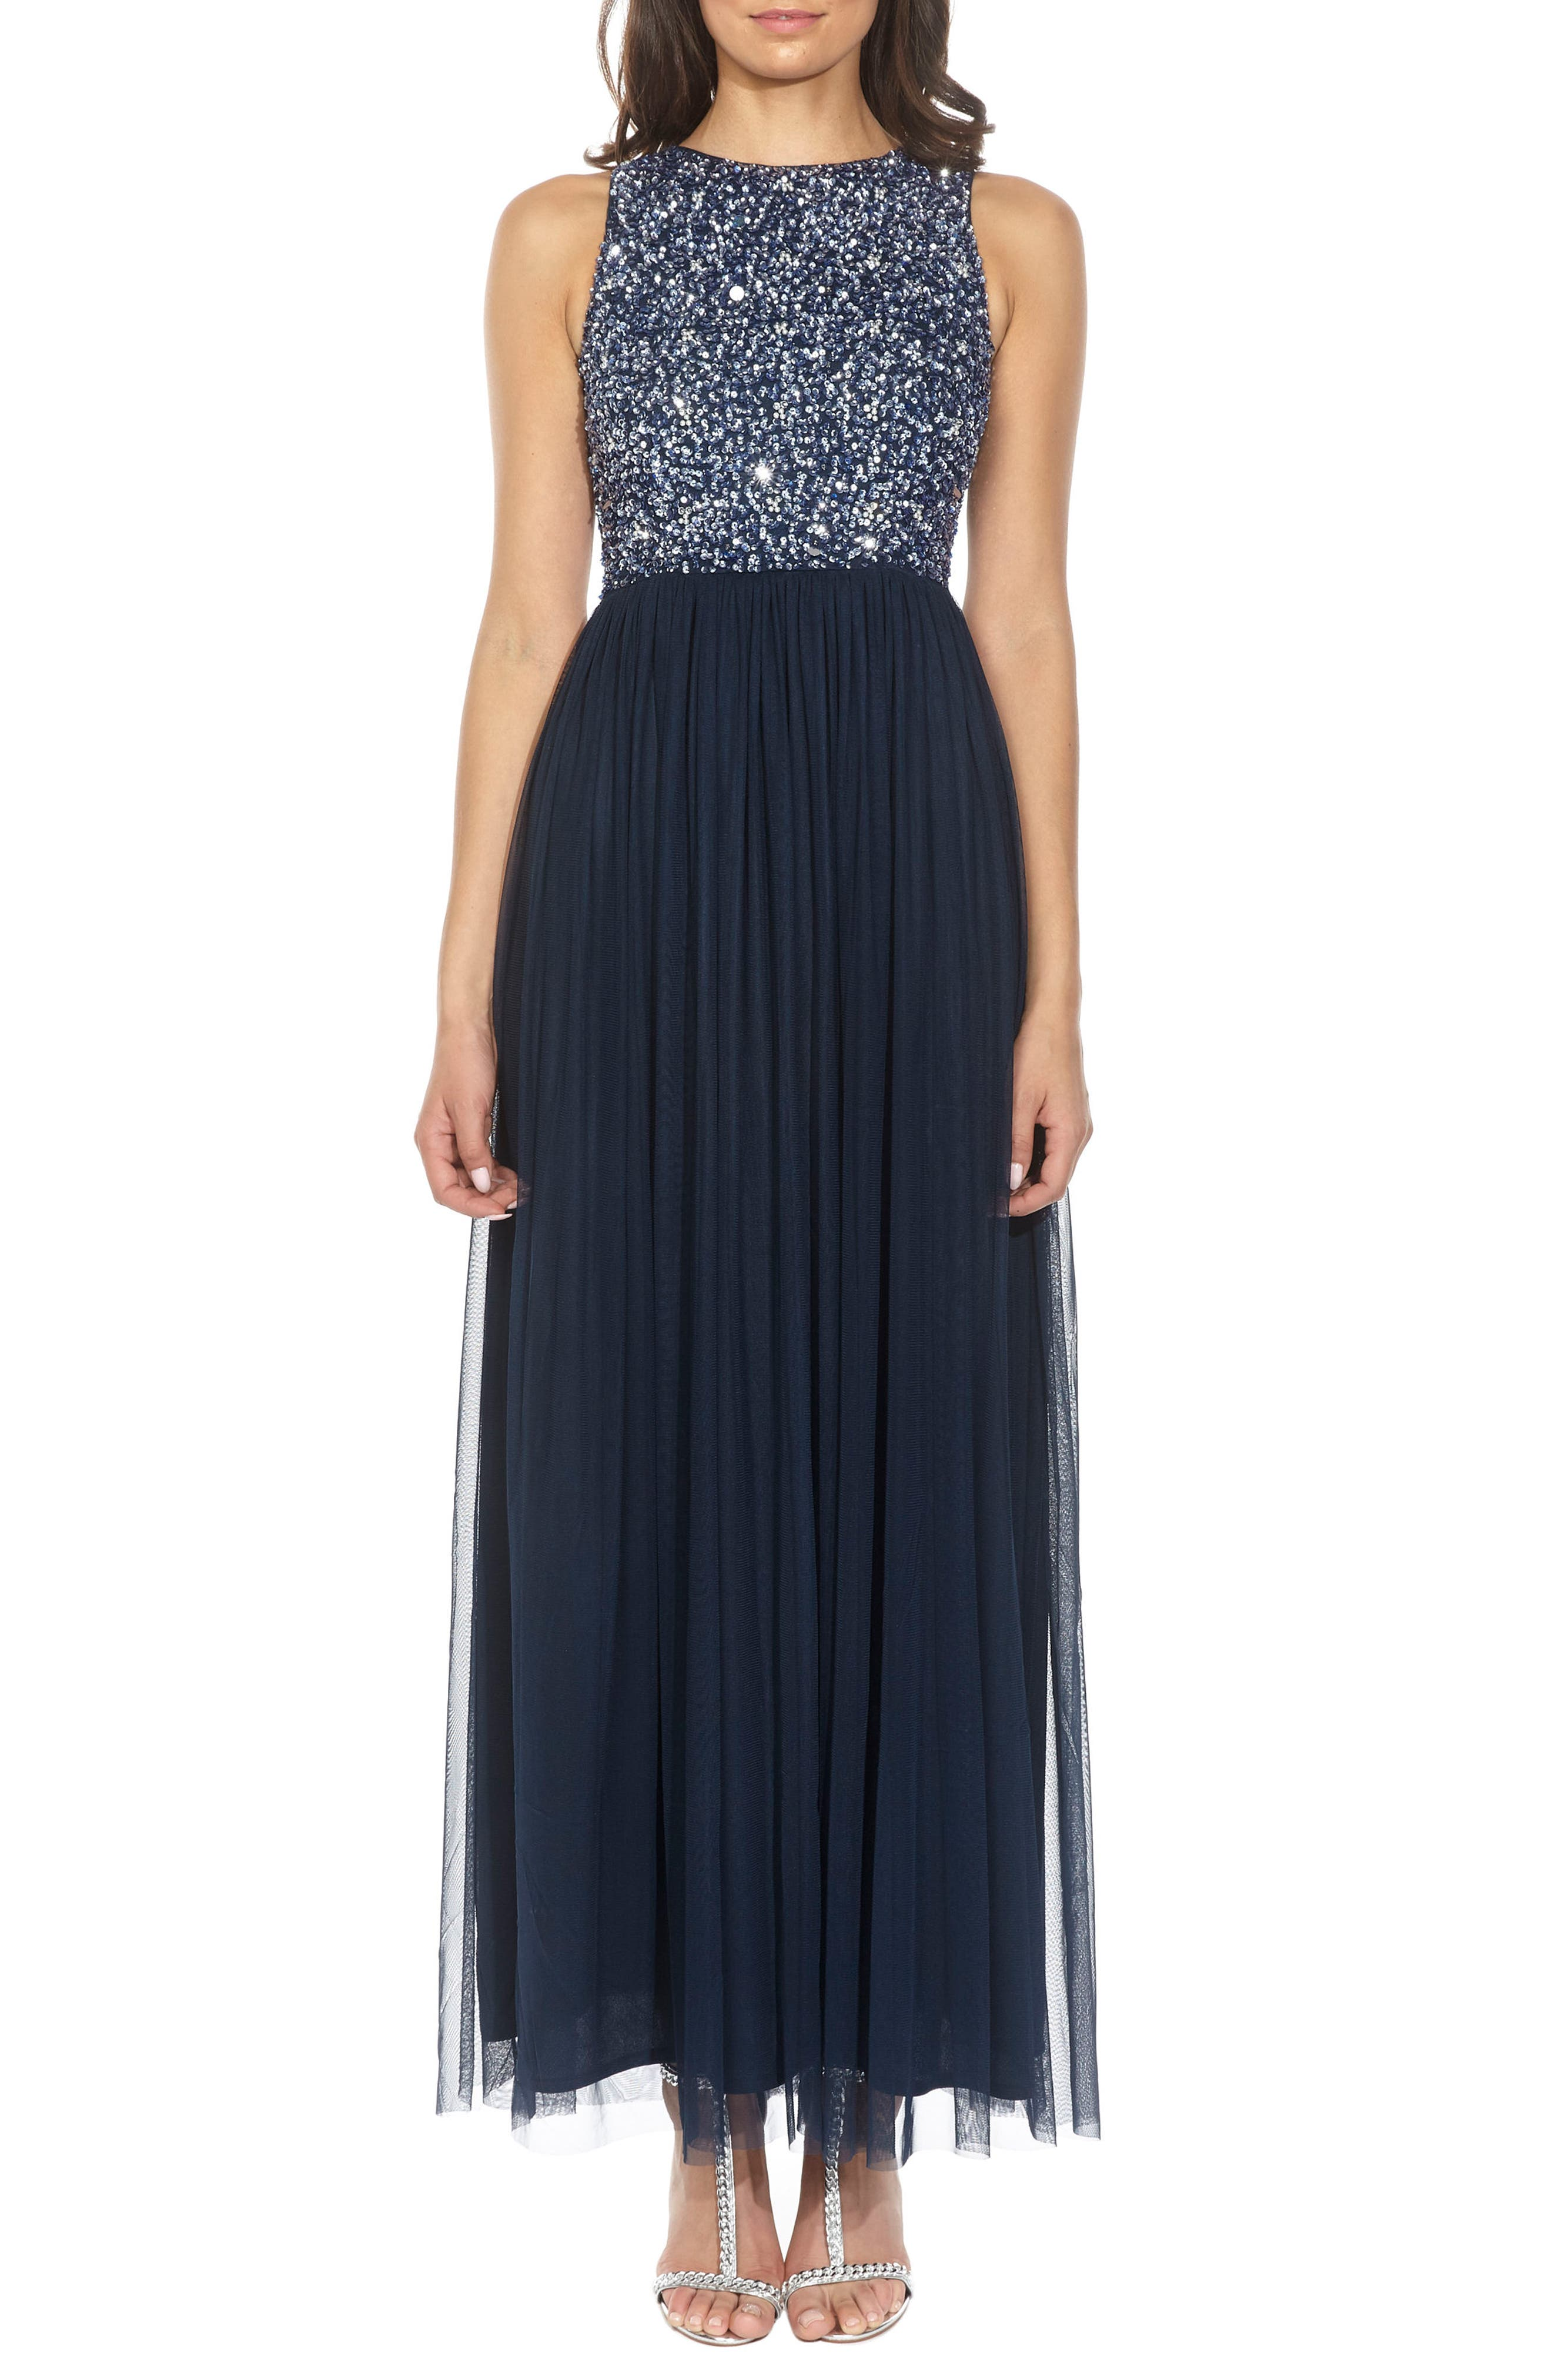 Picasso Embellished Bodice Maxi Dress,                         Main,                         color, Navy